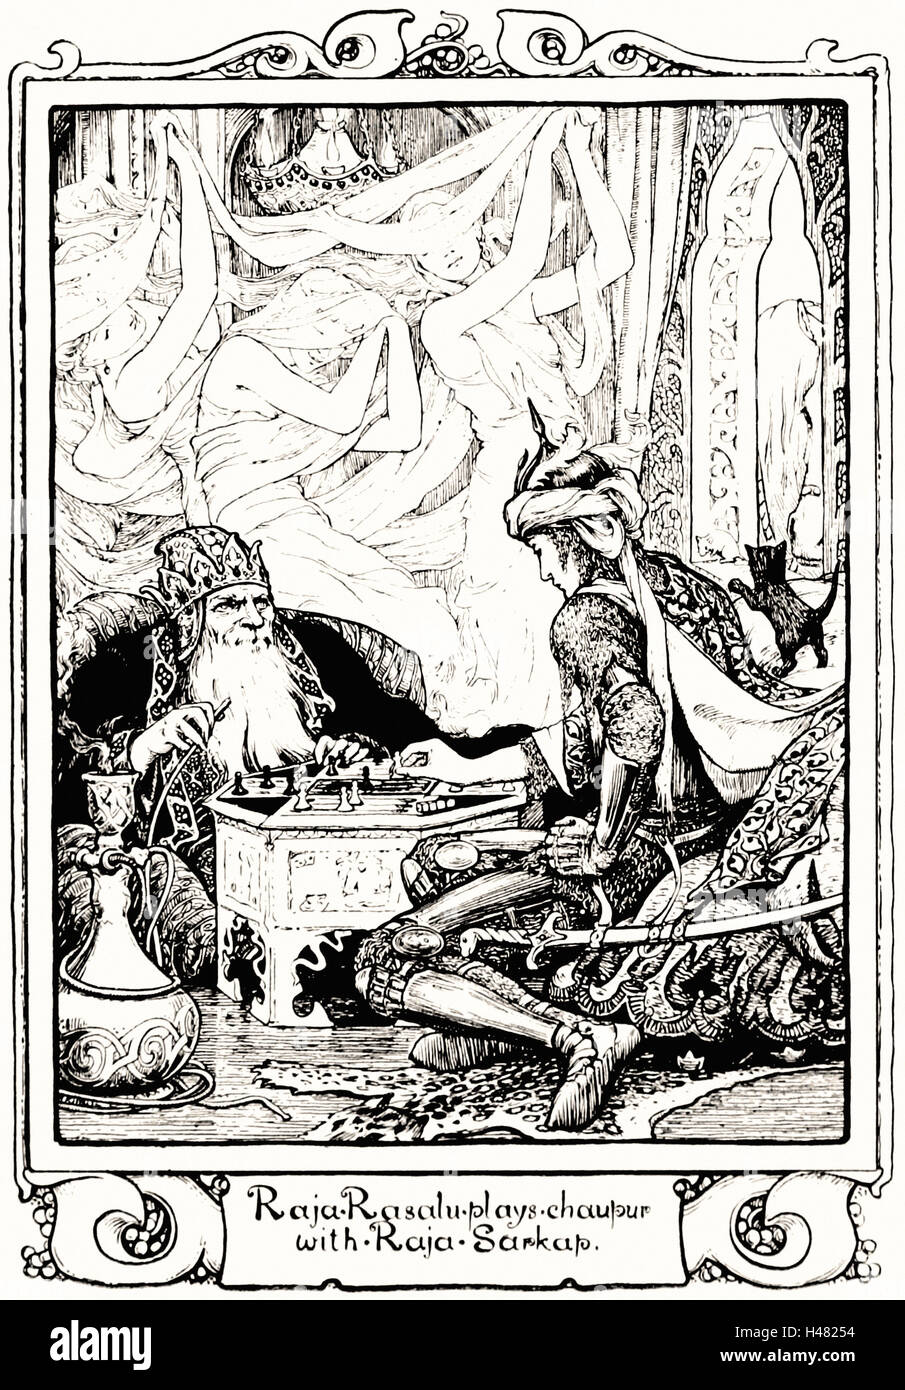 Illustration facing page 146 of Indian Fairy Tales (1892) - Stock Image